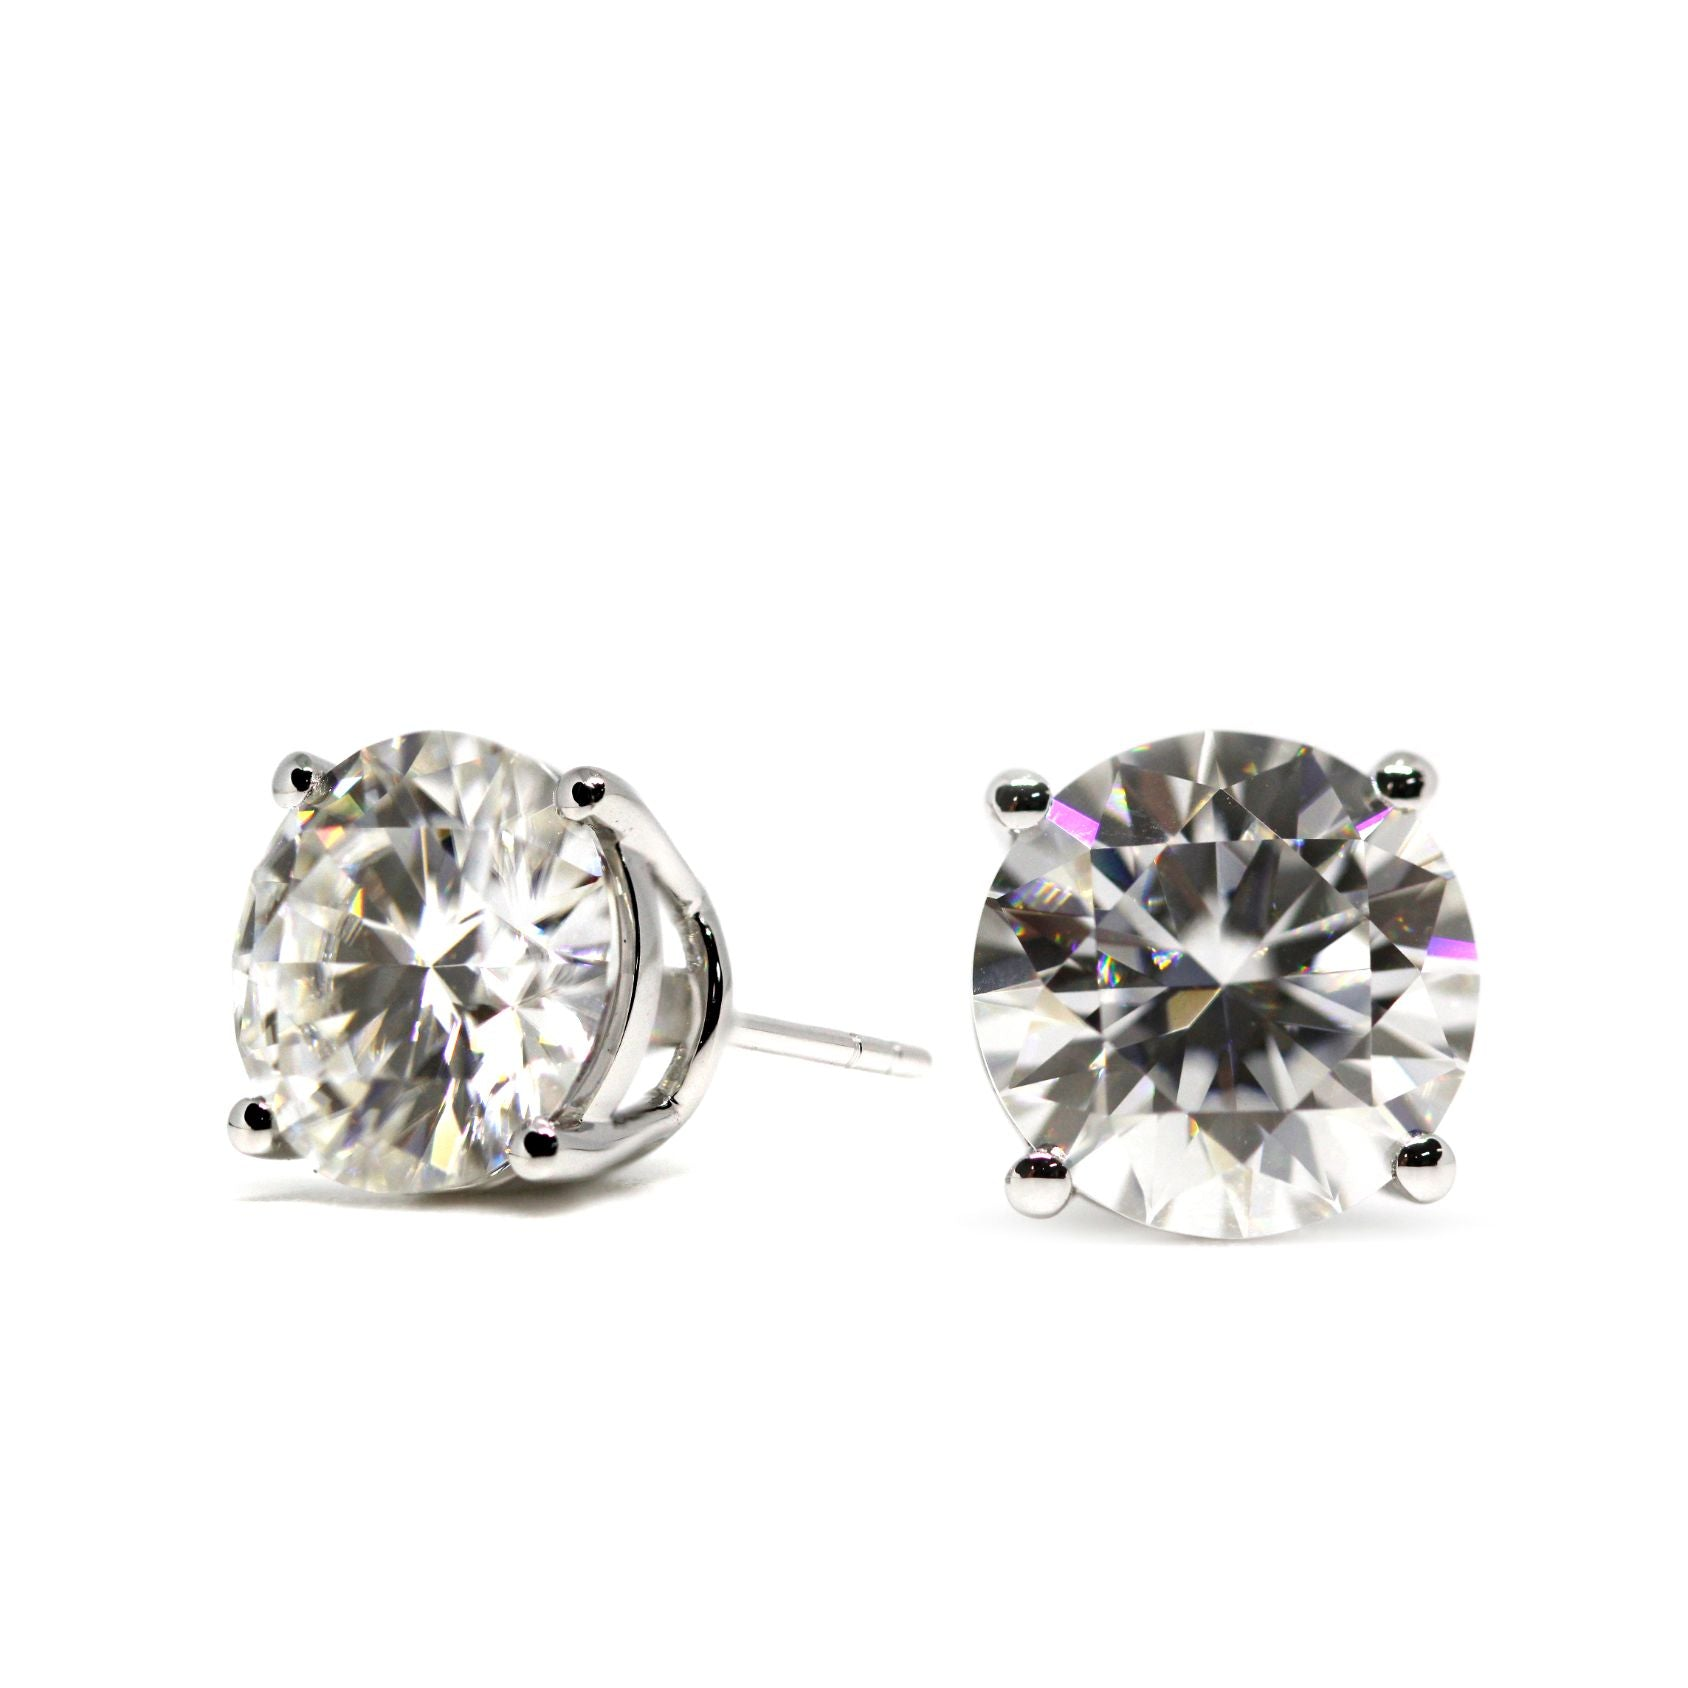 1.5 Carat Moissanite Solitaire Earrings in 18K White Gold Basket Setting - LeCaine Gems